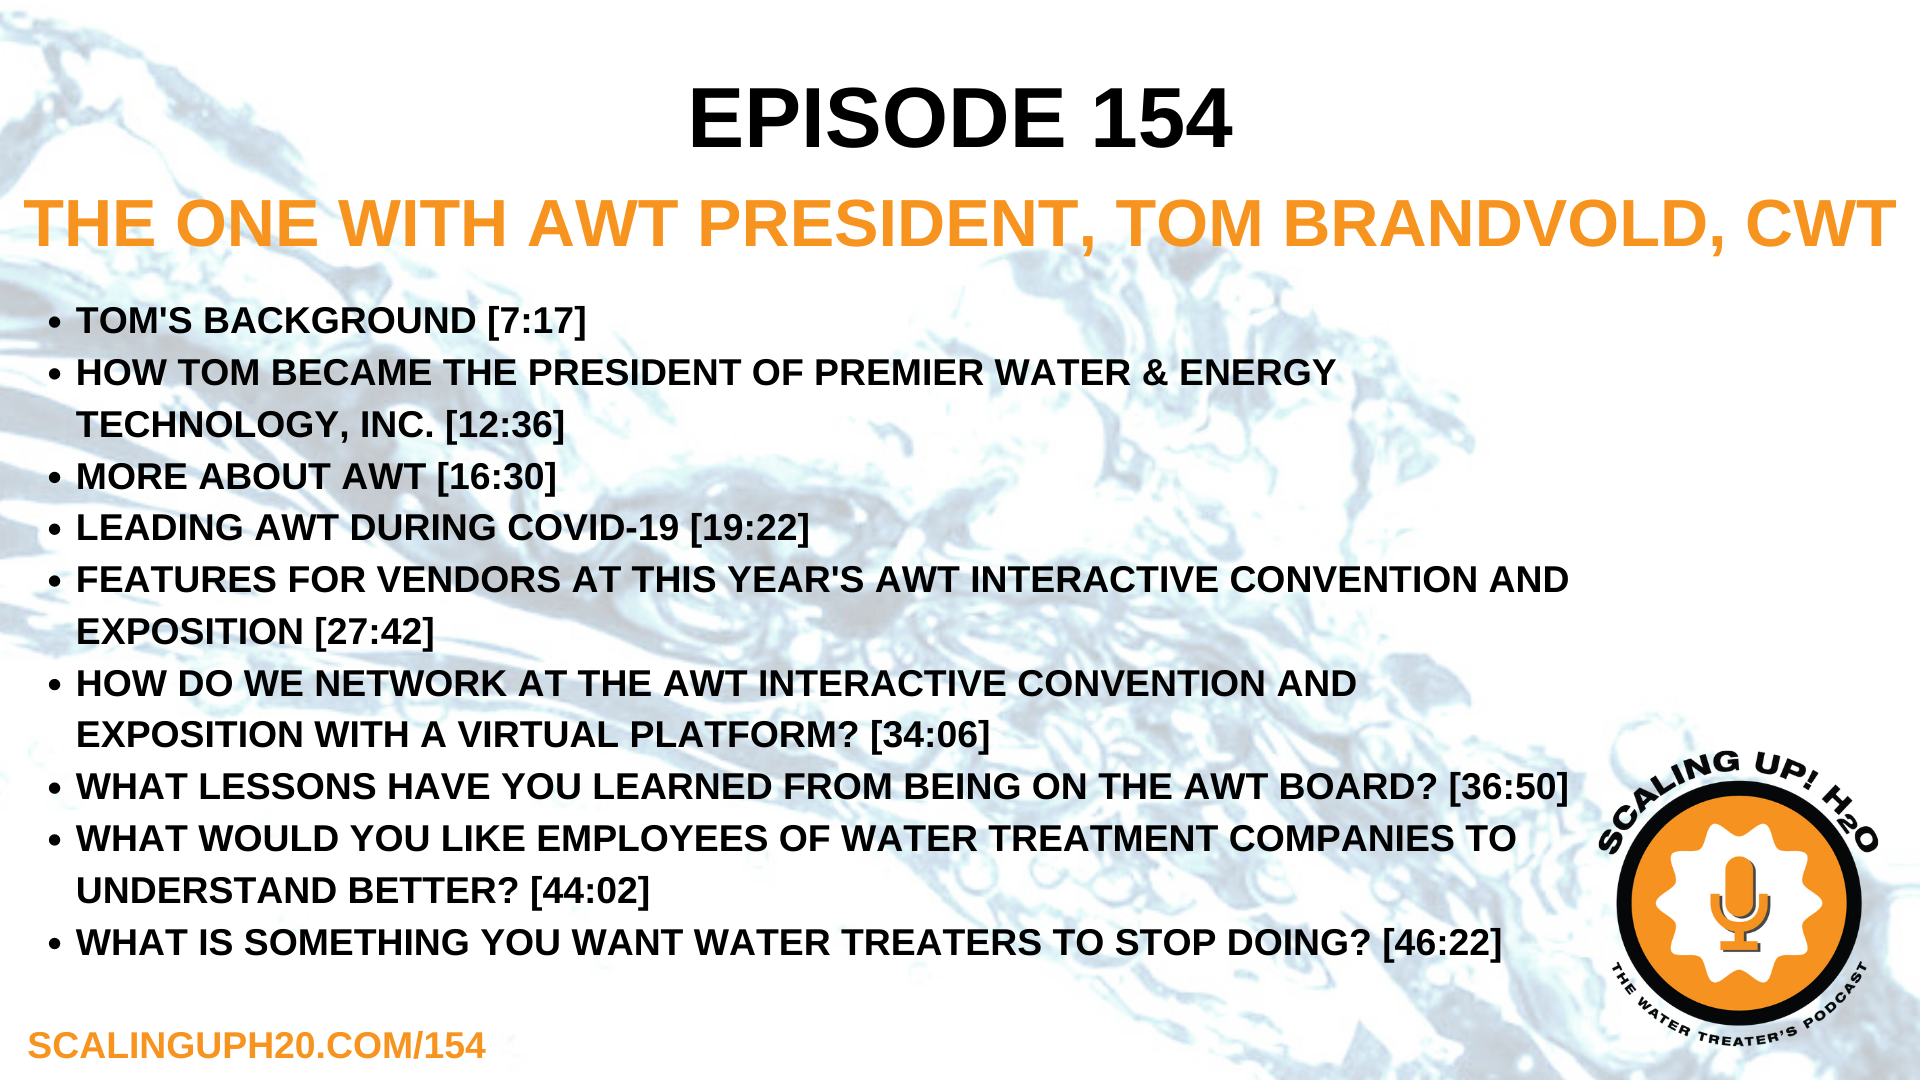 AWT, Association of Water Technologies